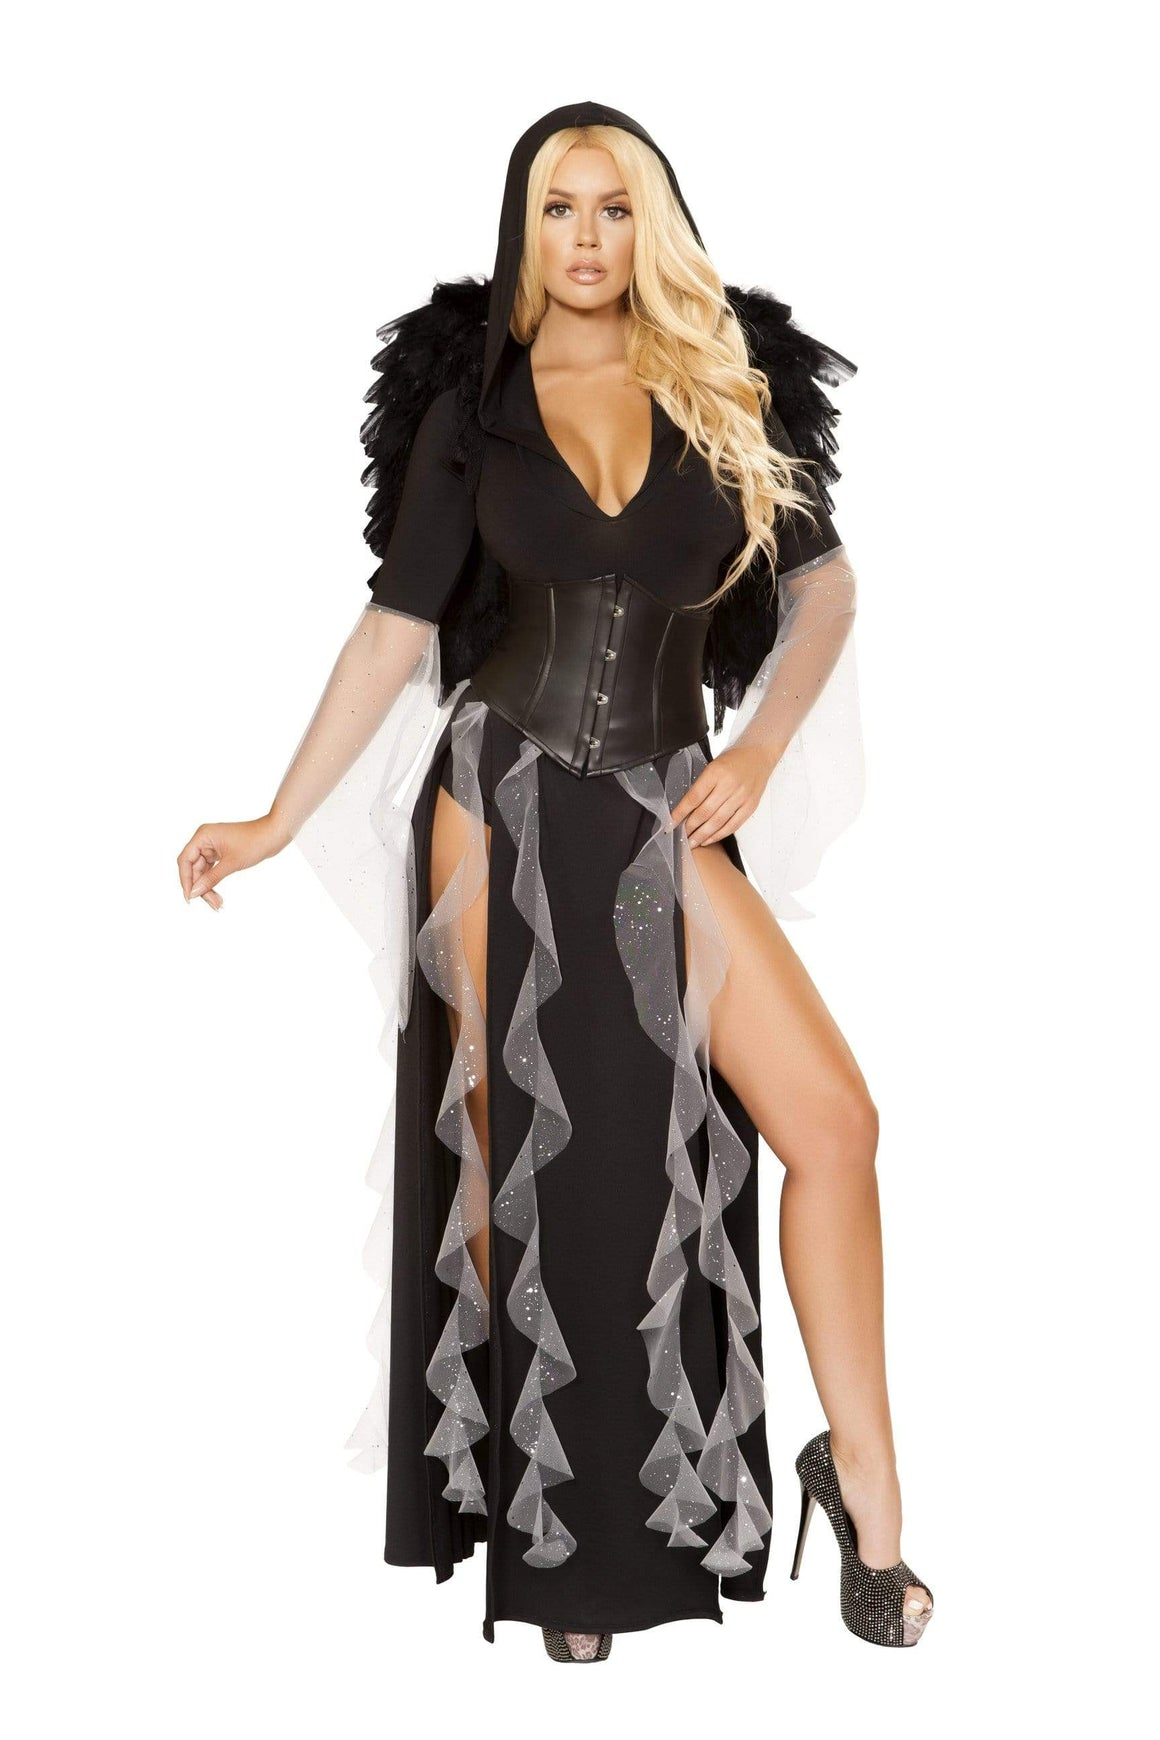 Roma Small / Black 3pc Midnight Angel SHC-4867-S-R Apparel & Accessories > Costumes & Accessories > Costumes